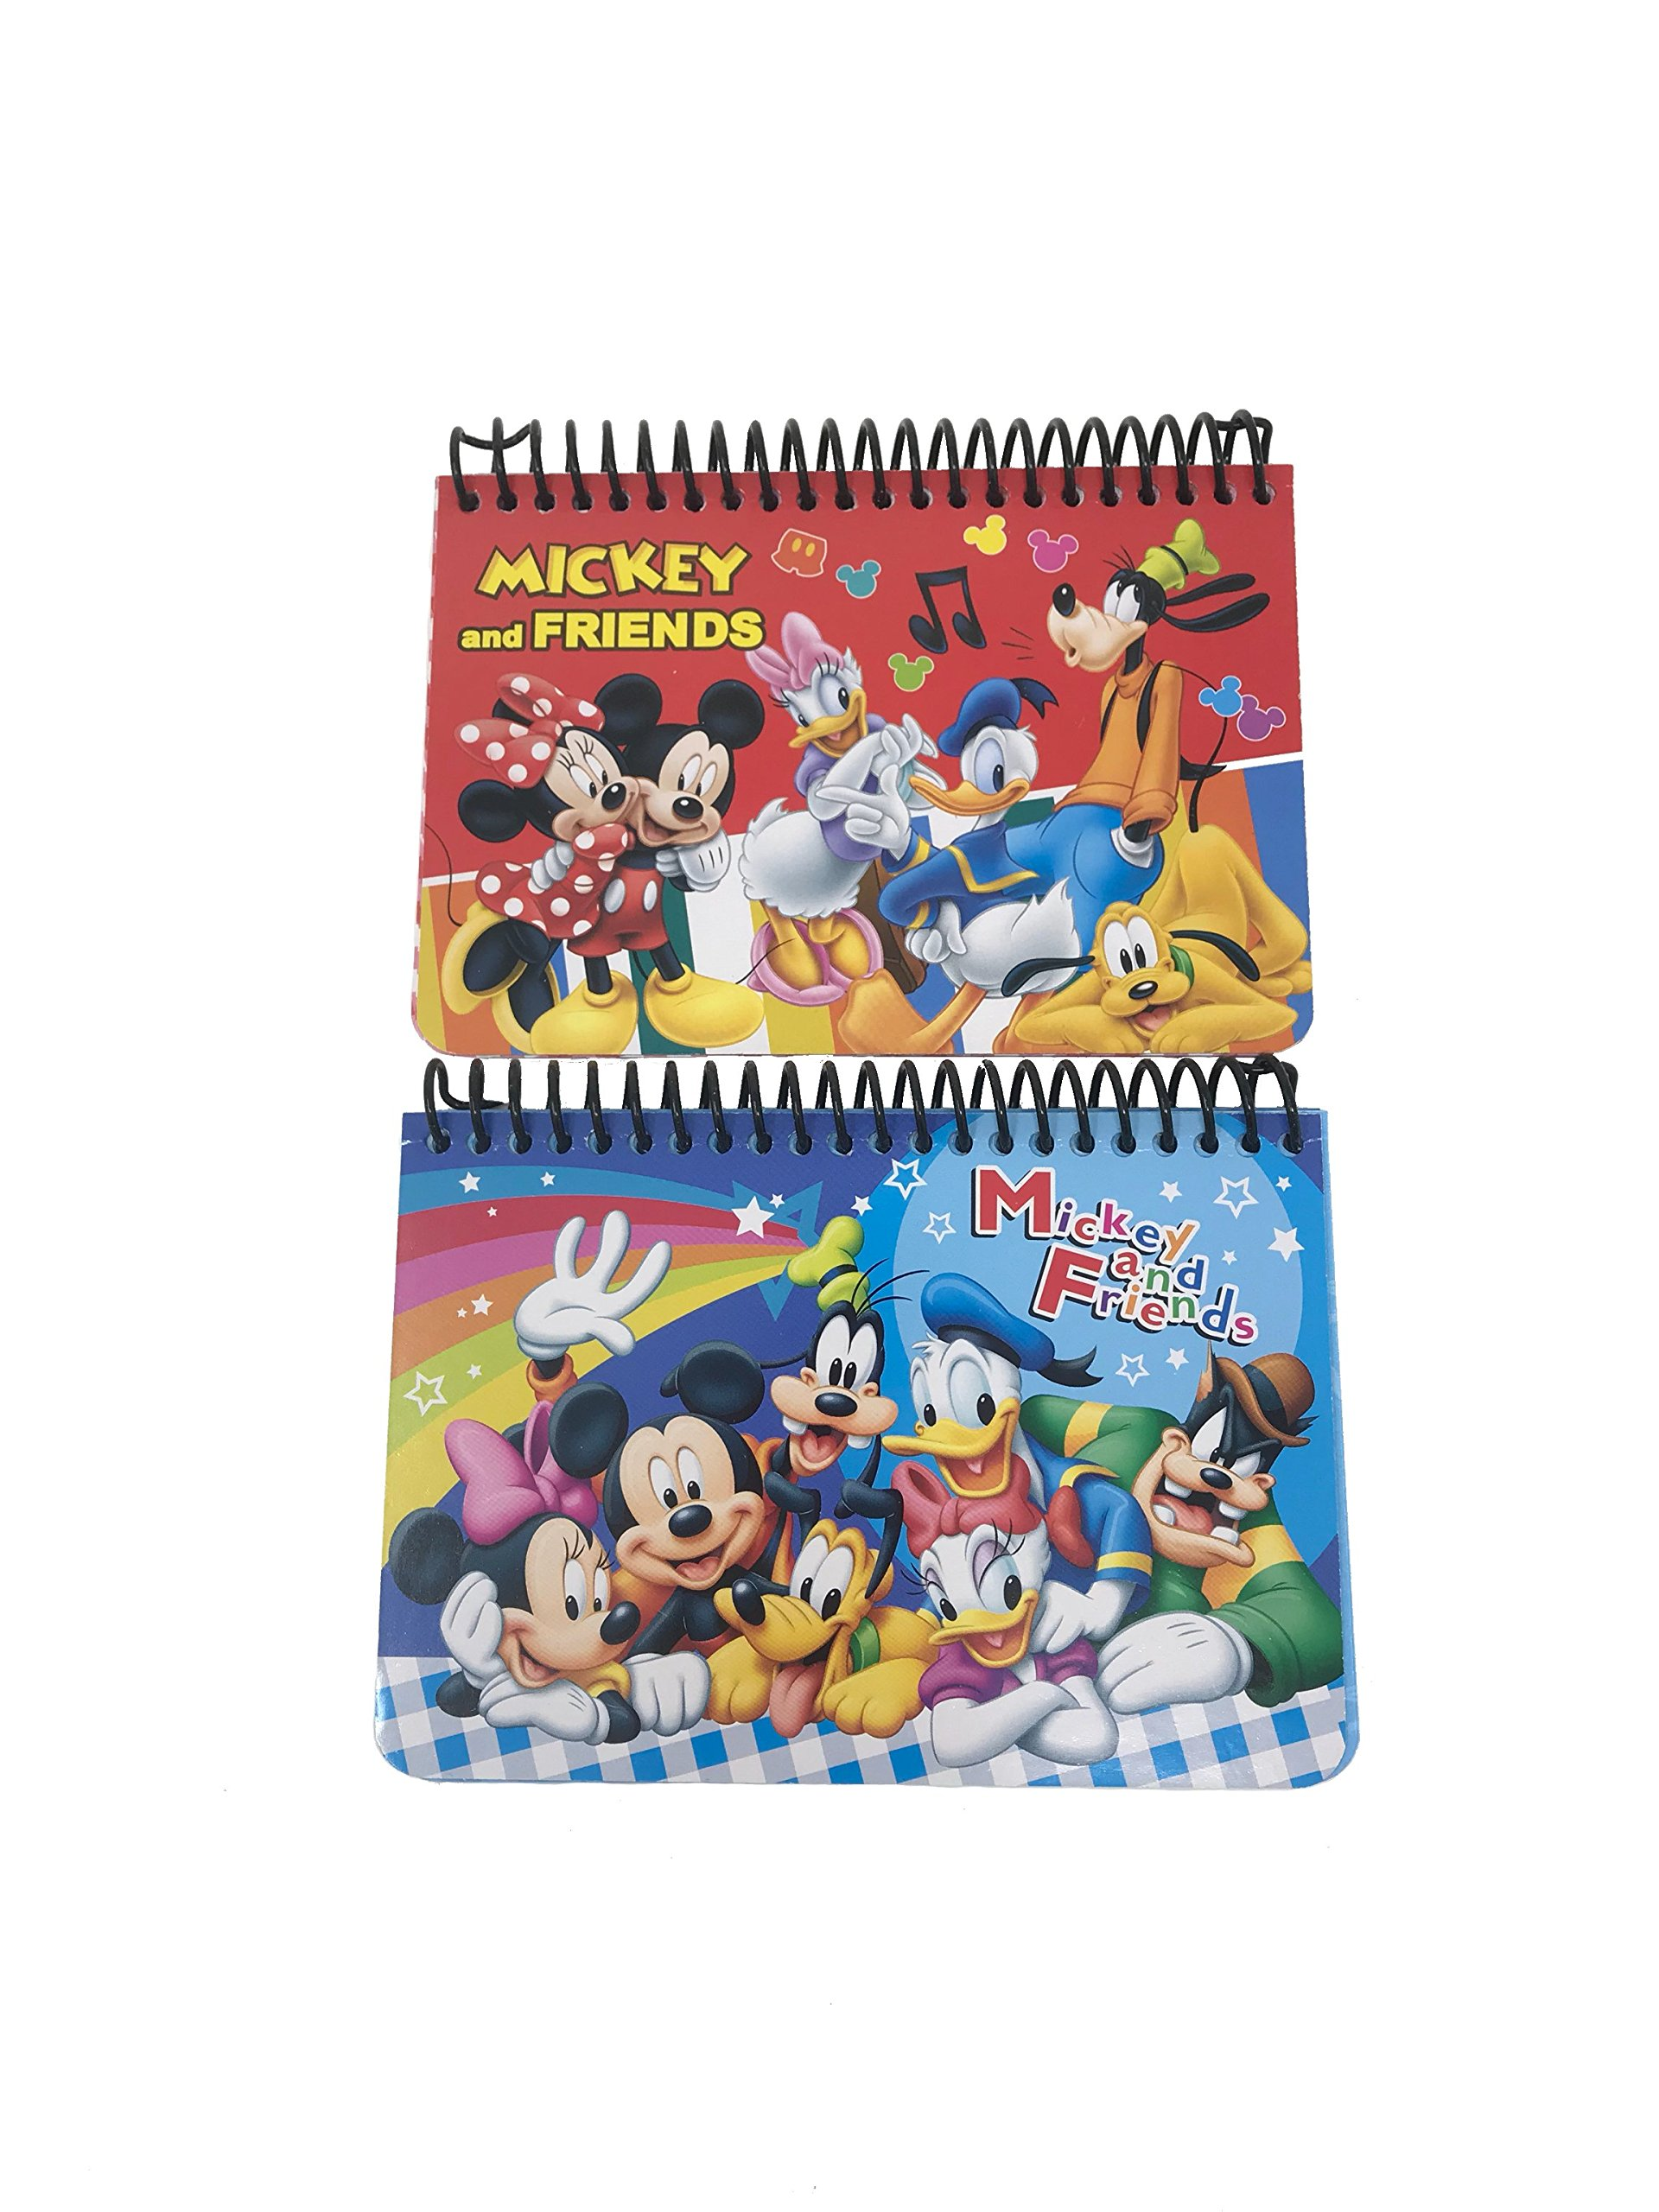 Disney Mickey & Friends Autograph Book, 2 pc (Red, Blue)